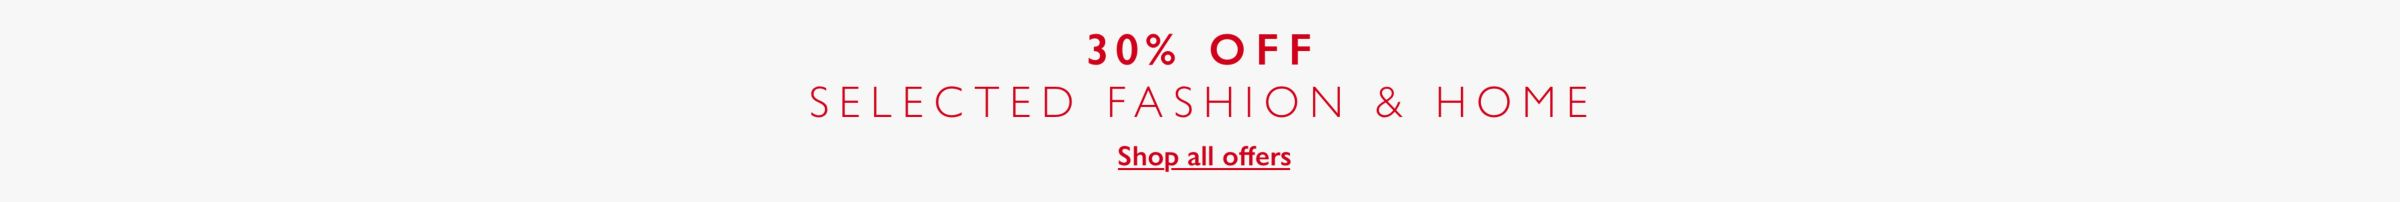 30 percent off selected fashion and home